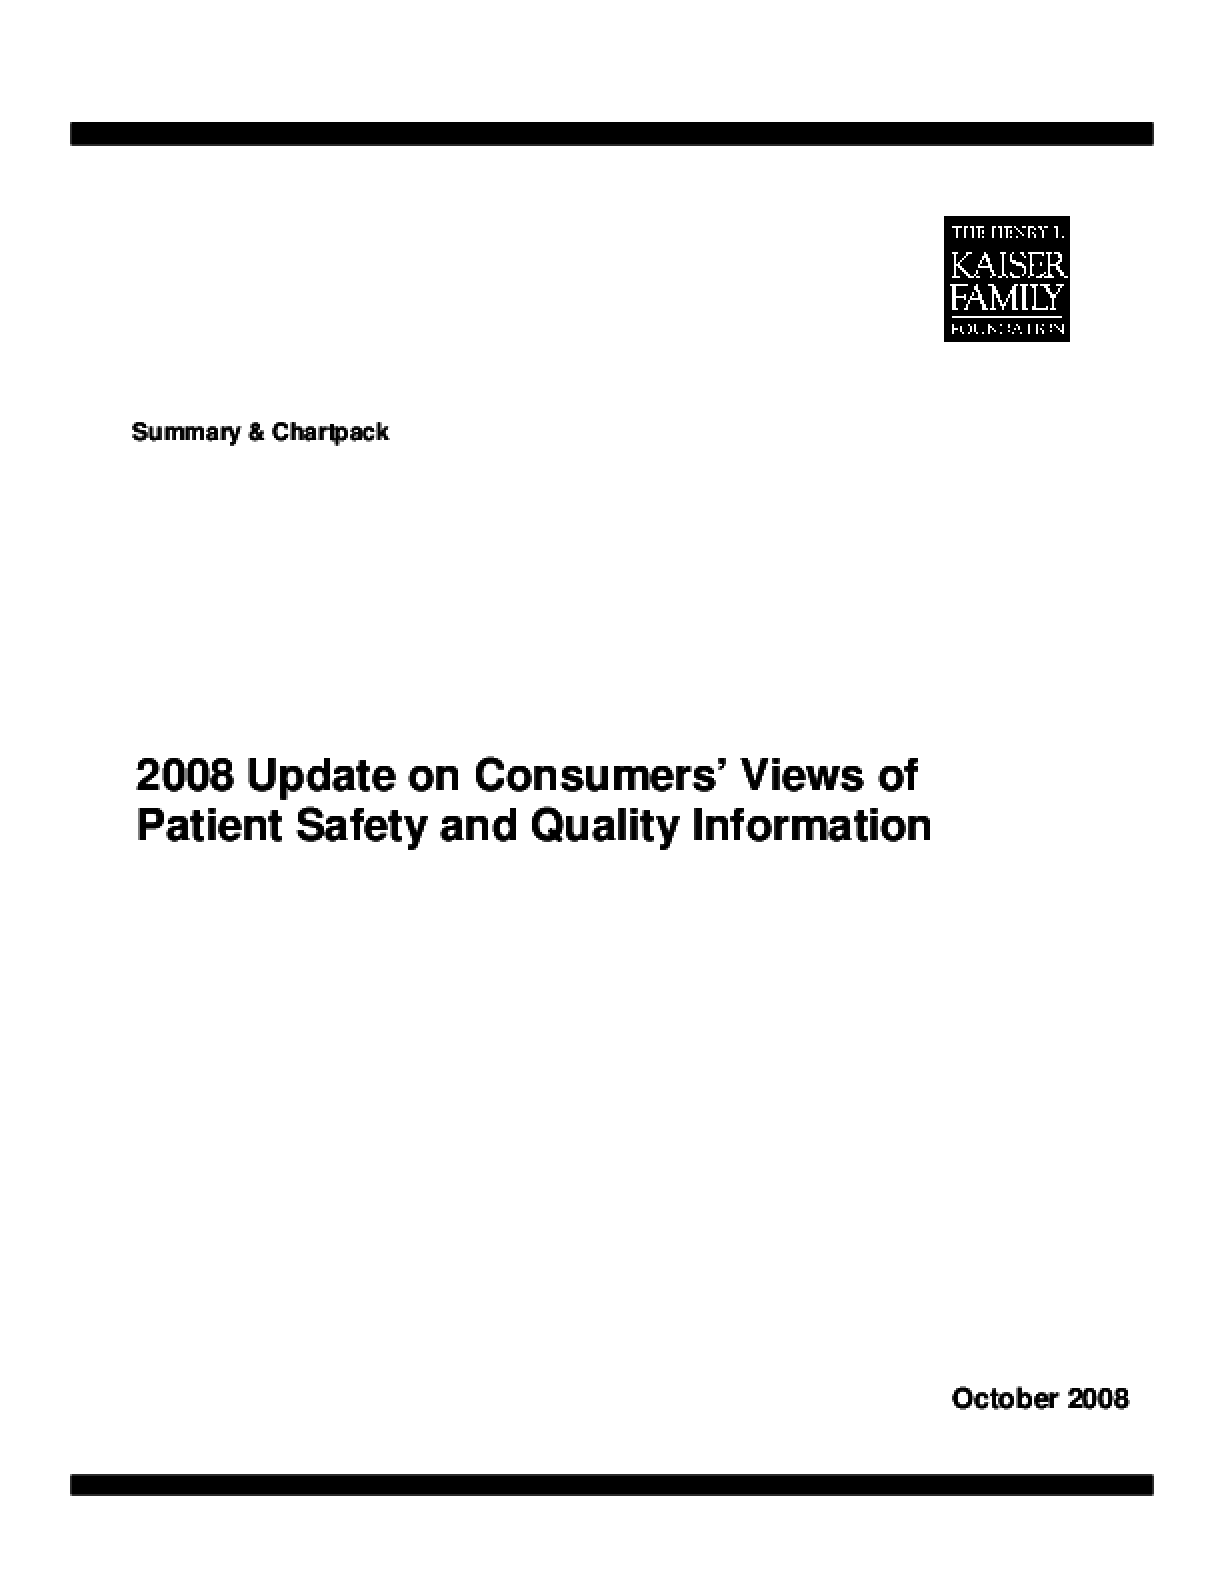 2008 Update on Consumers' Views of Patient Safety and Quality Information